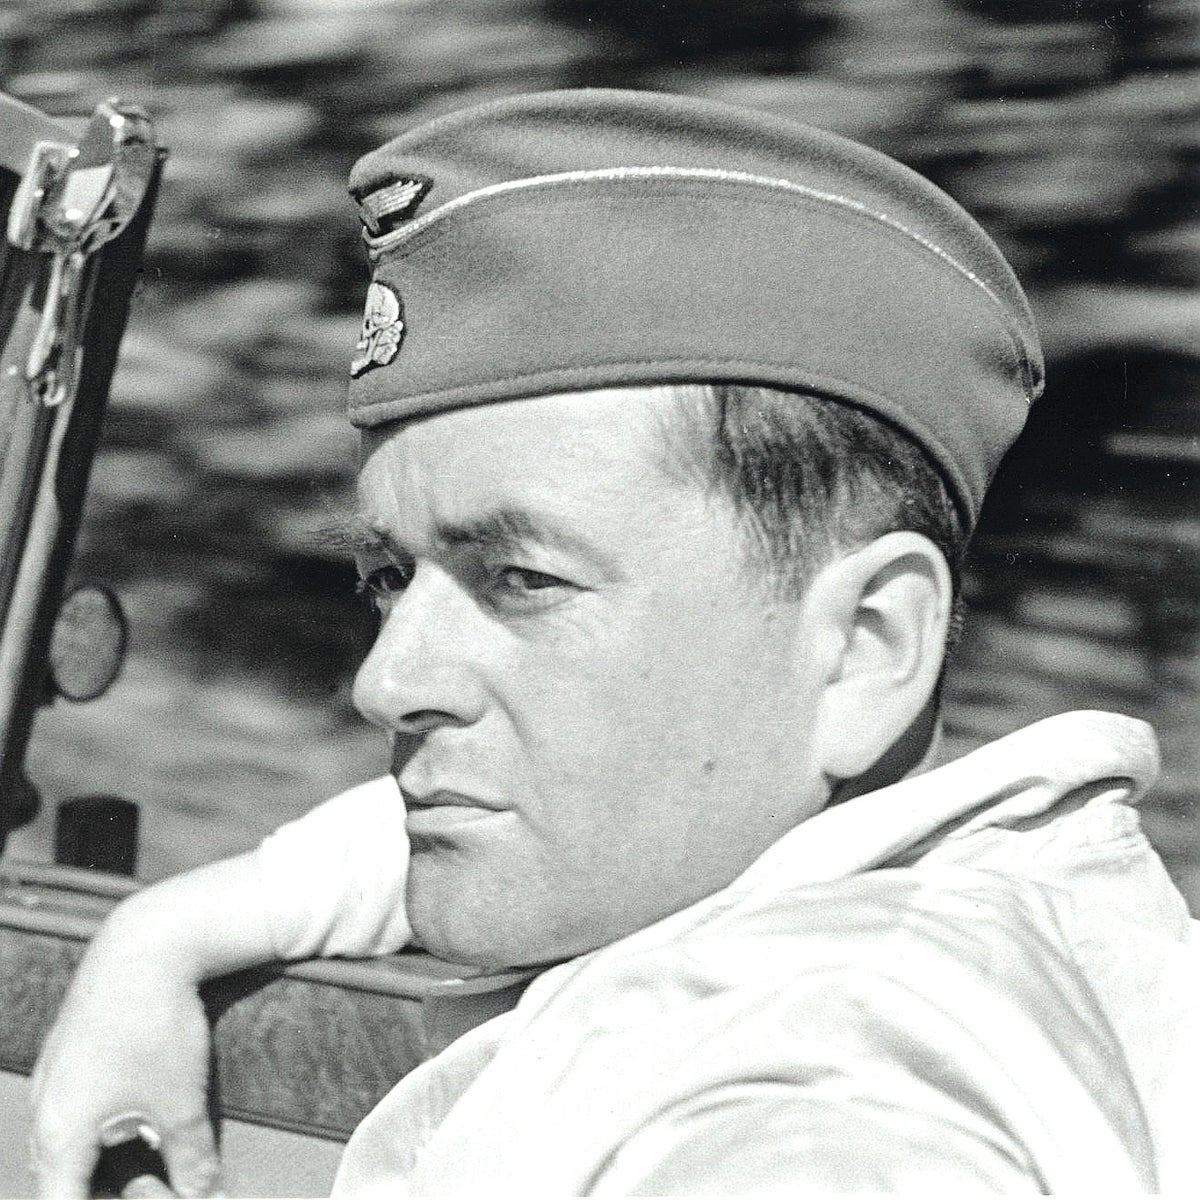 """A still from the documentary """"Speer Goes to Hollywood,"""" about Nazi war criminal Albert Speer."""